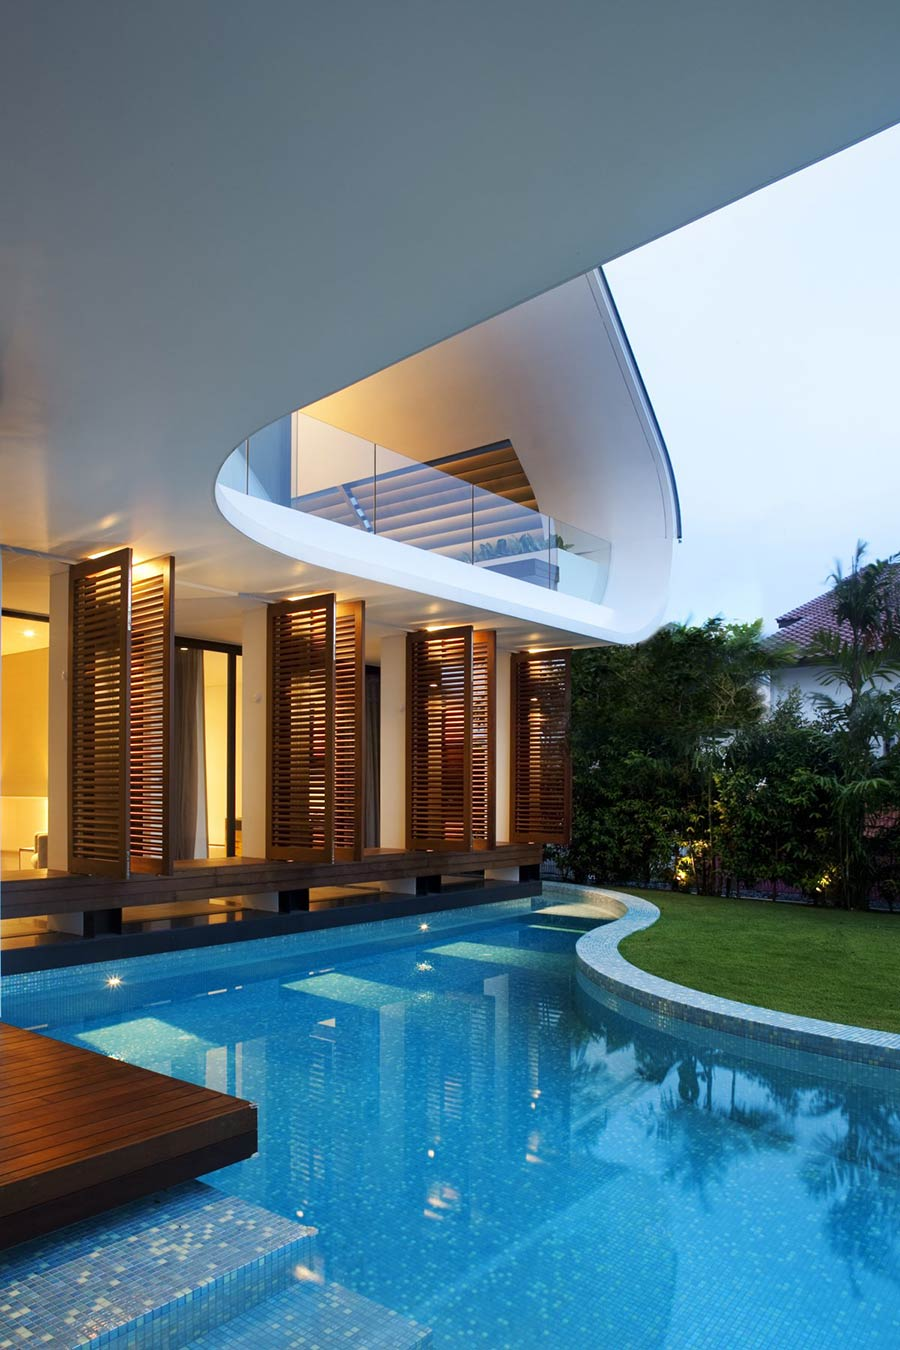 Pool Lights, Ninety7 @ Siglap Road House by Aamer Architects